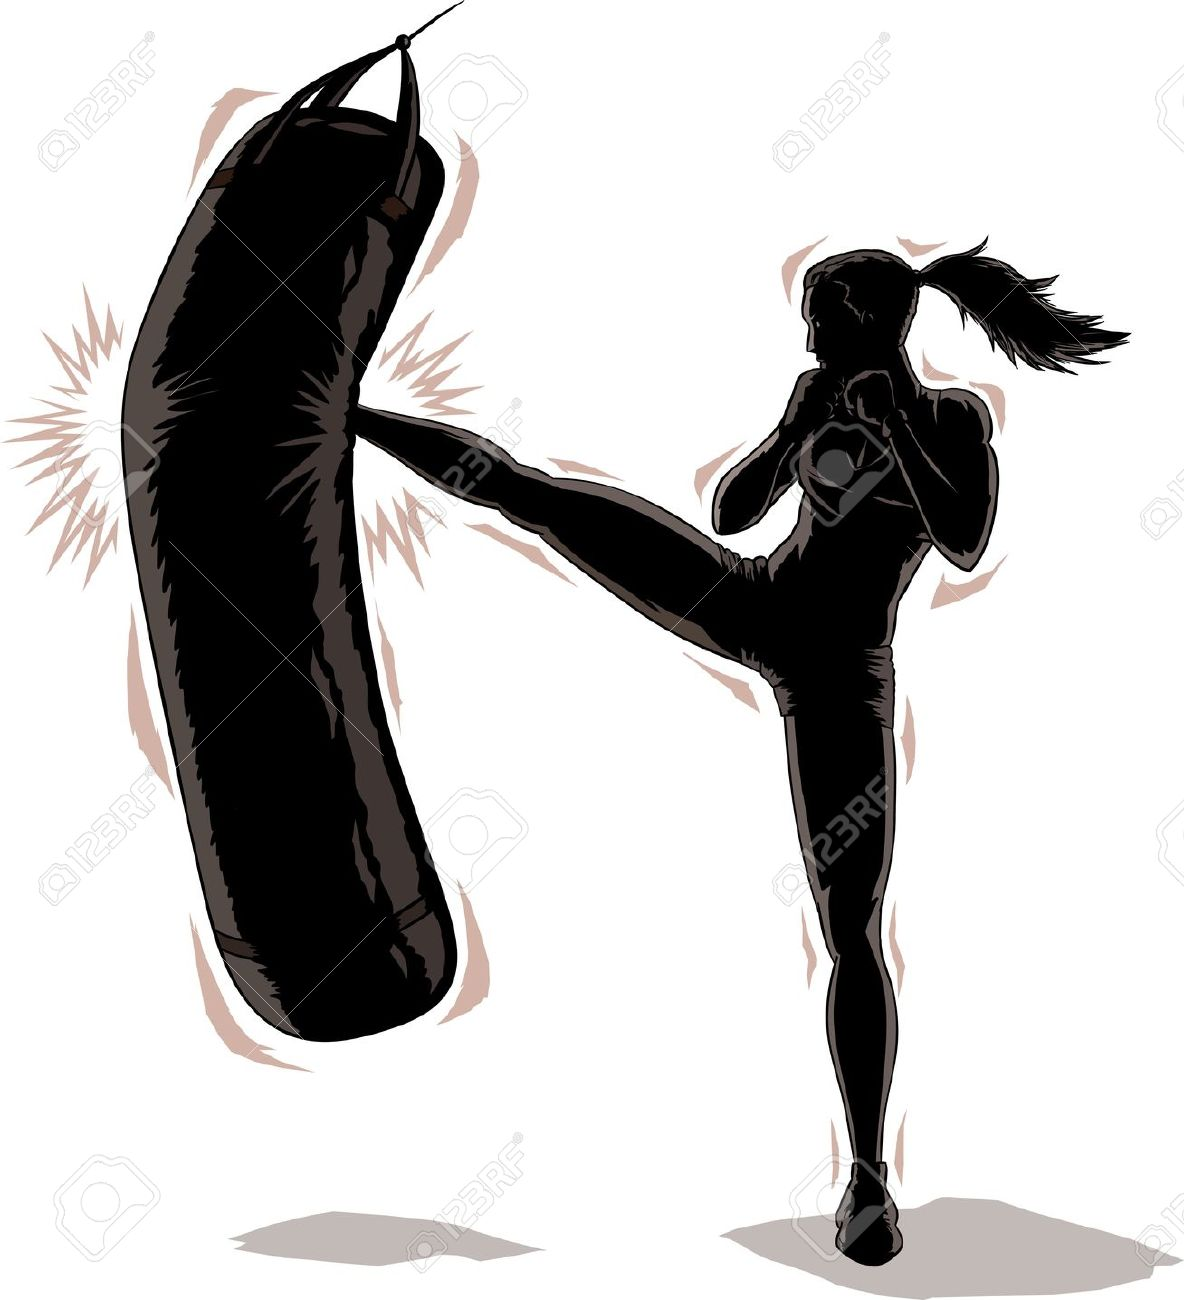 1184x1300 Kickboxing Stock Photos Images, Royalty Free Kickboxing Images